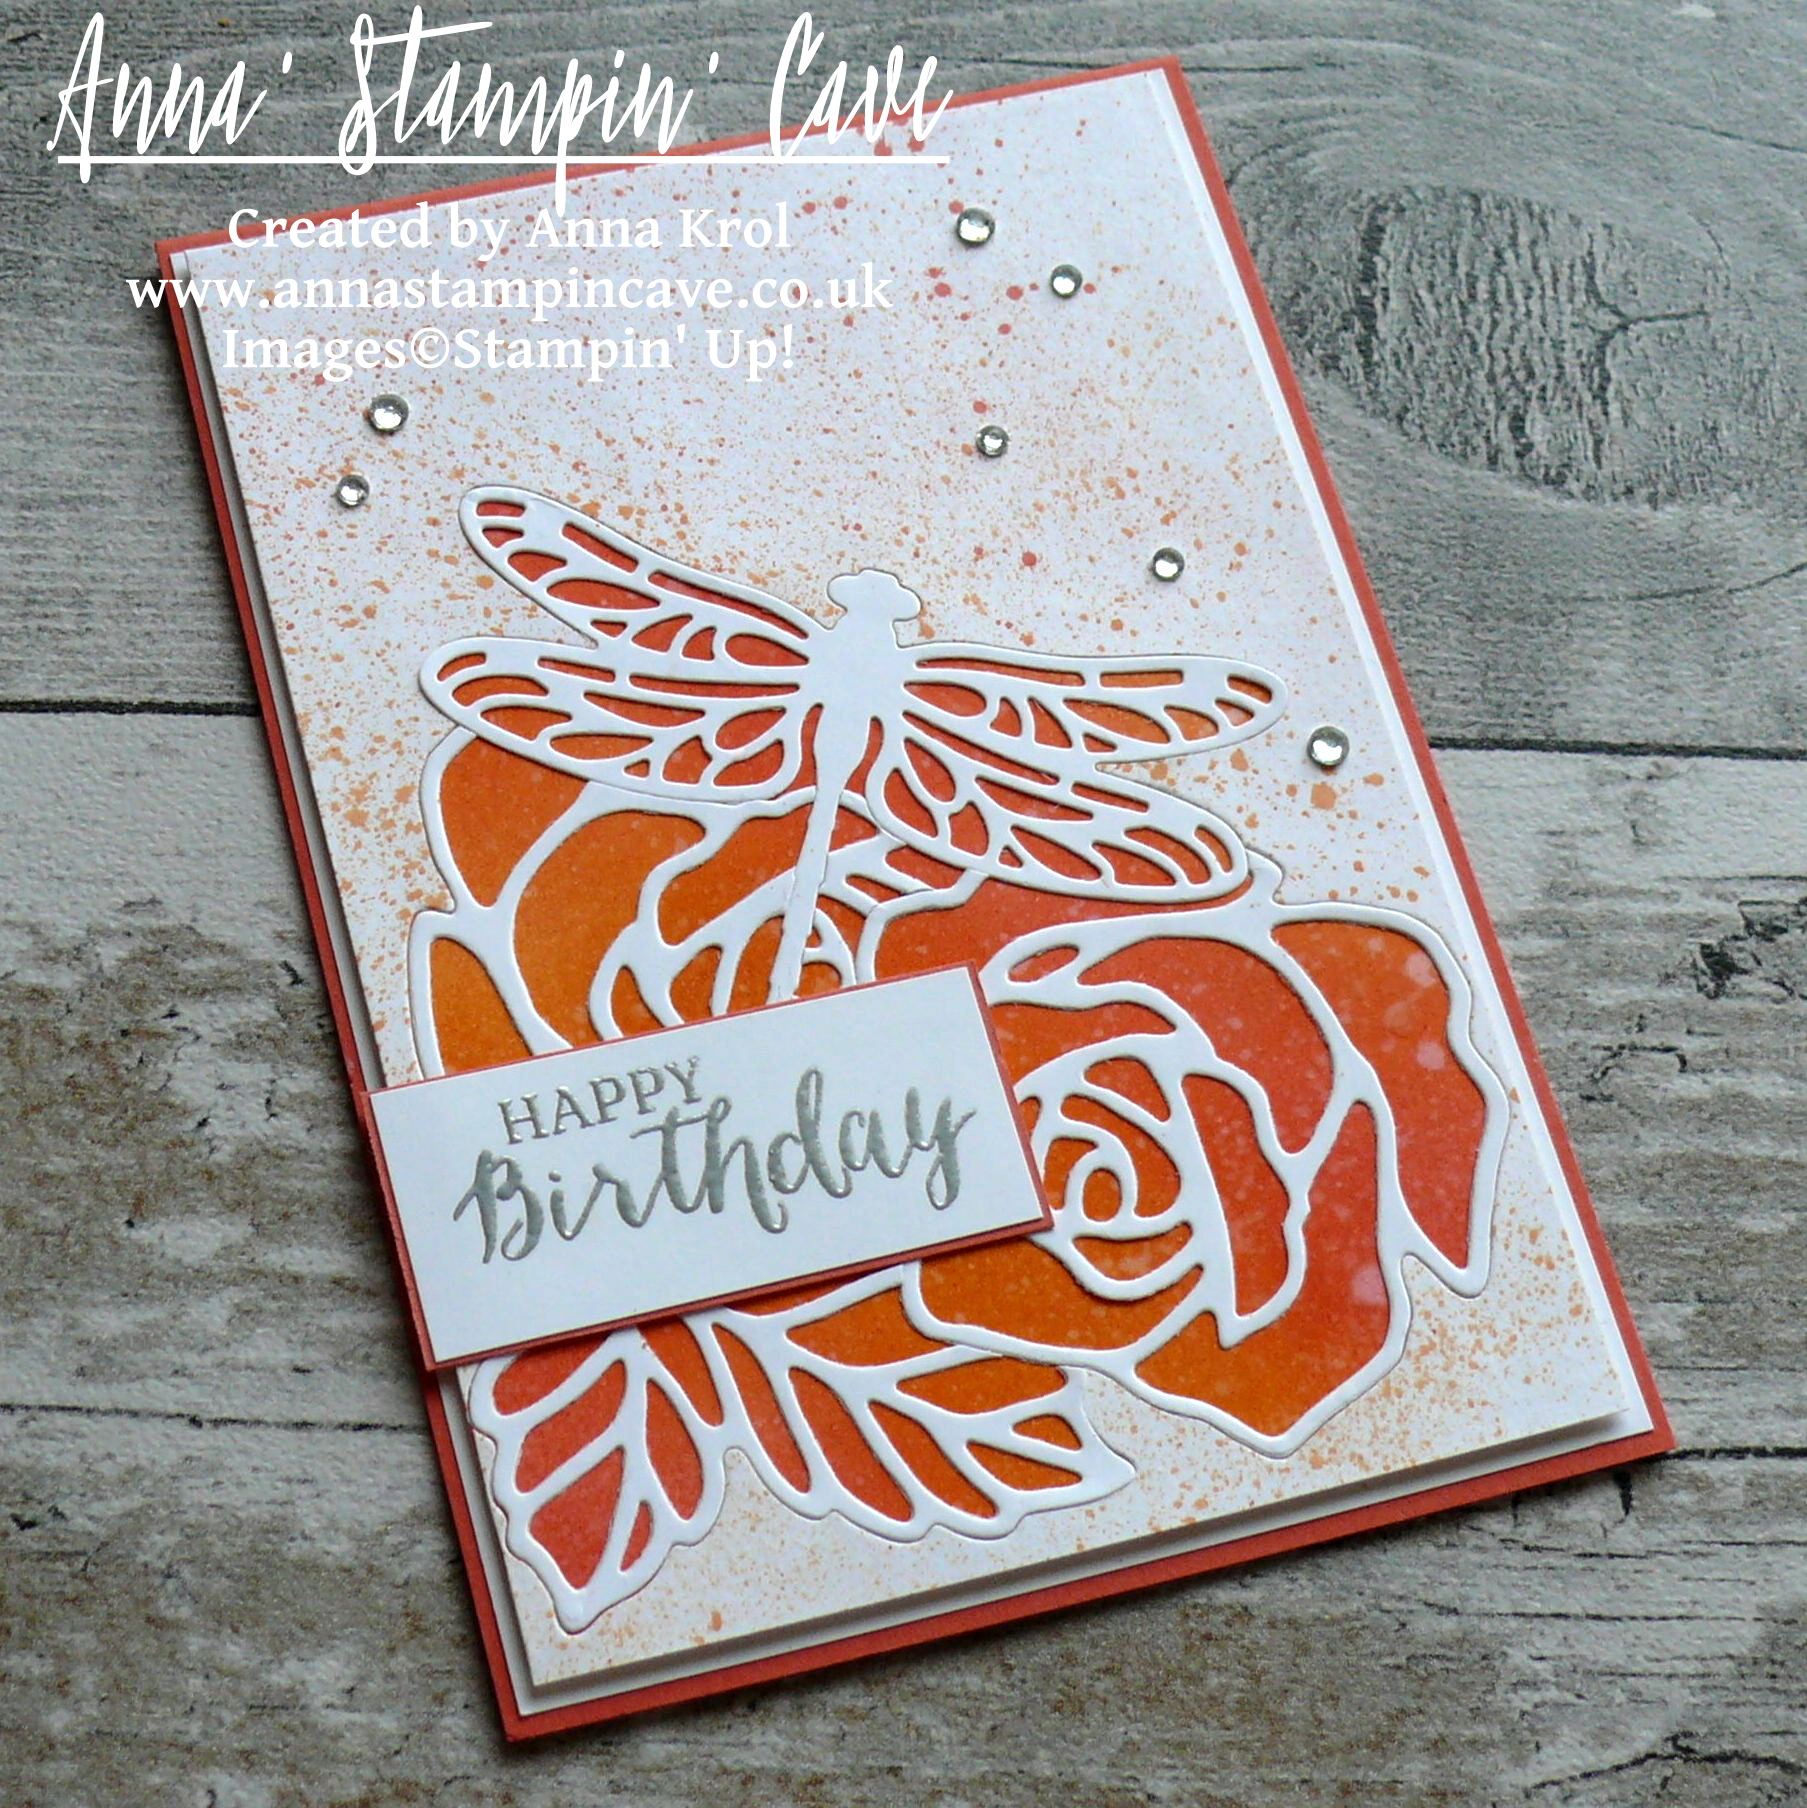 Anna' Stampin' Cave - Roses And Dragonfly Birthday Card using Inlaid Partial Die Cutting_Stampin' Up! Rose Garden Thinlits Dies_Detailed Dragonfly Thinlits Dies 4